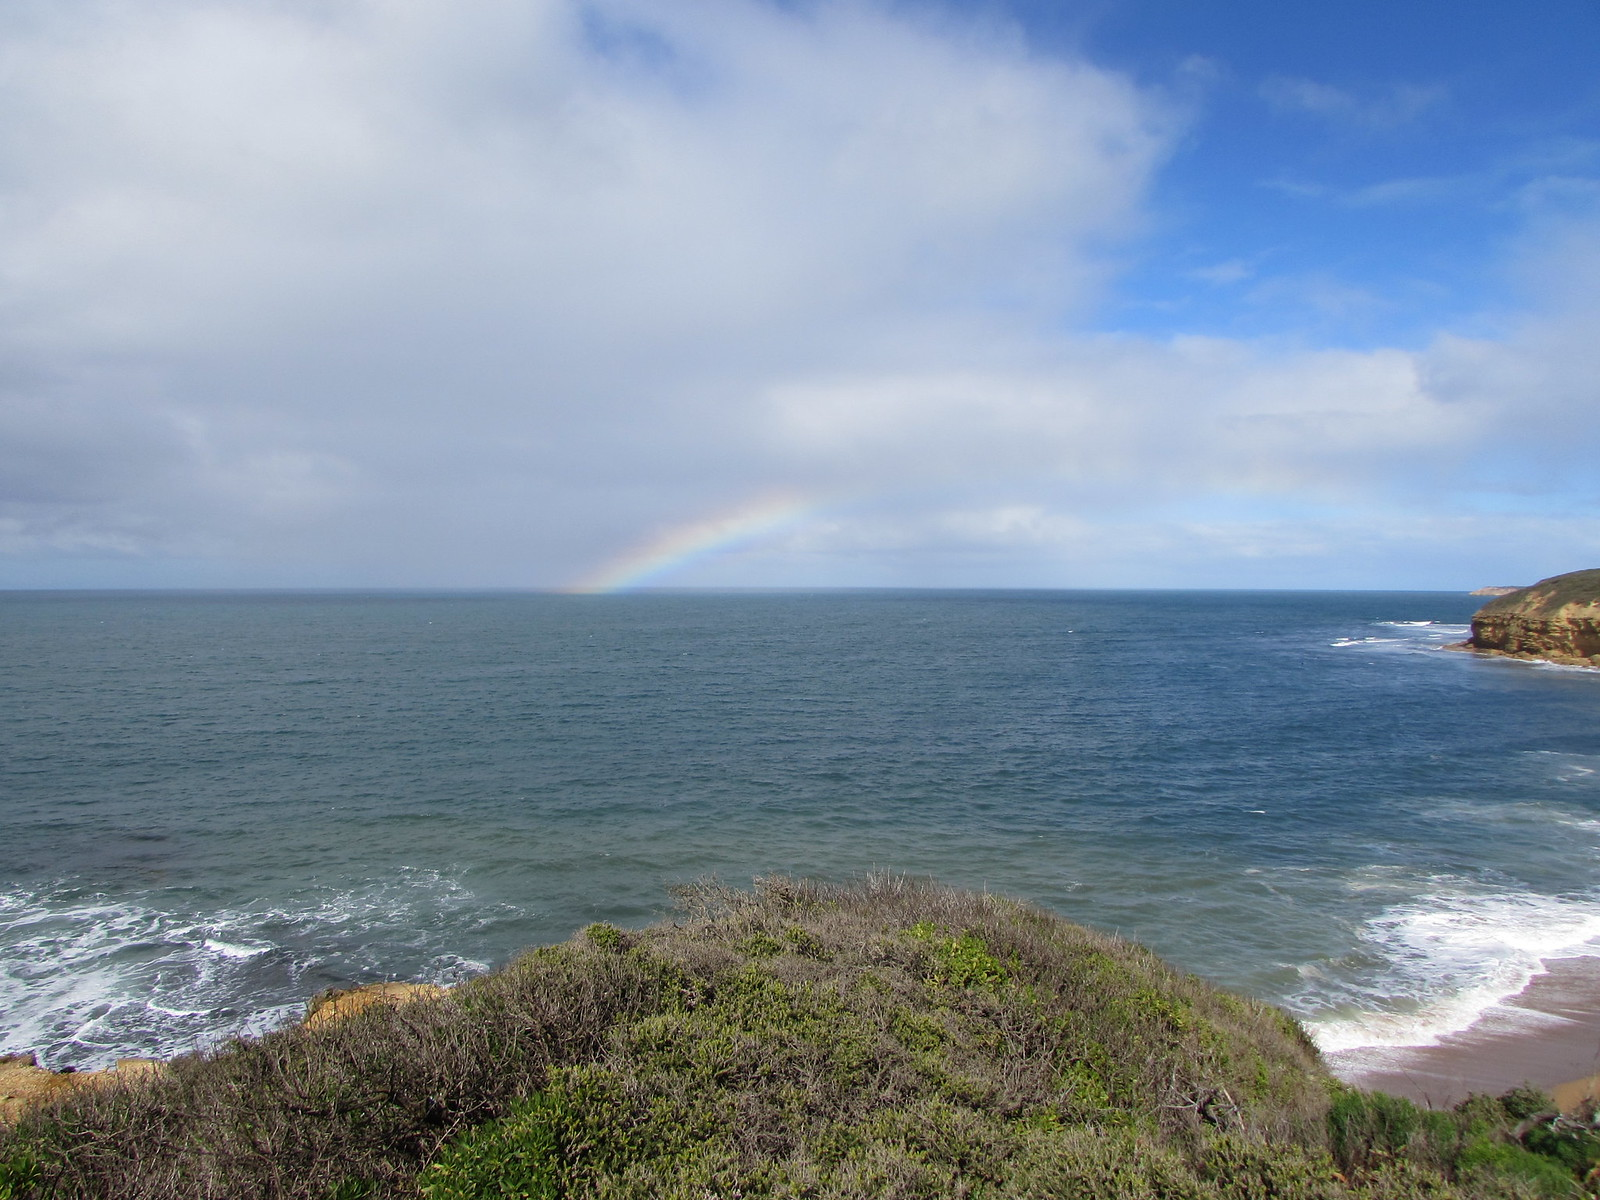 A rainbow - at Bells Beach